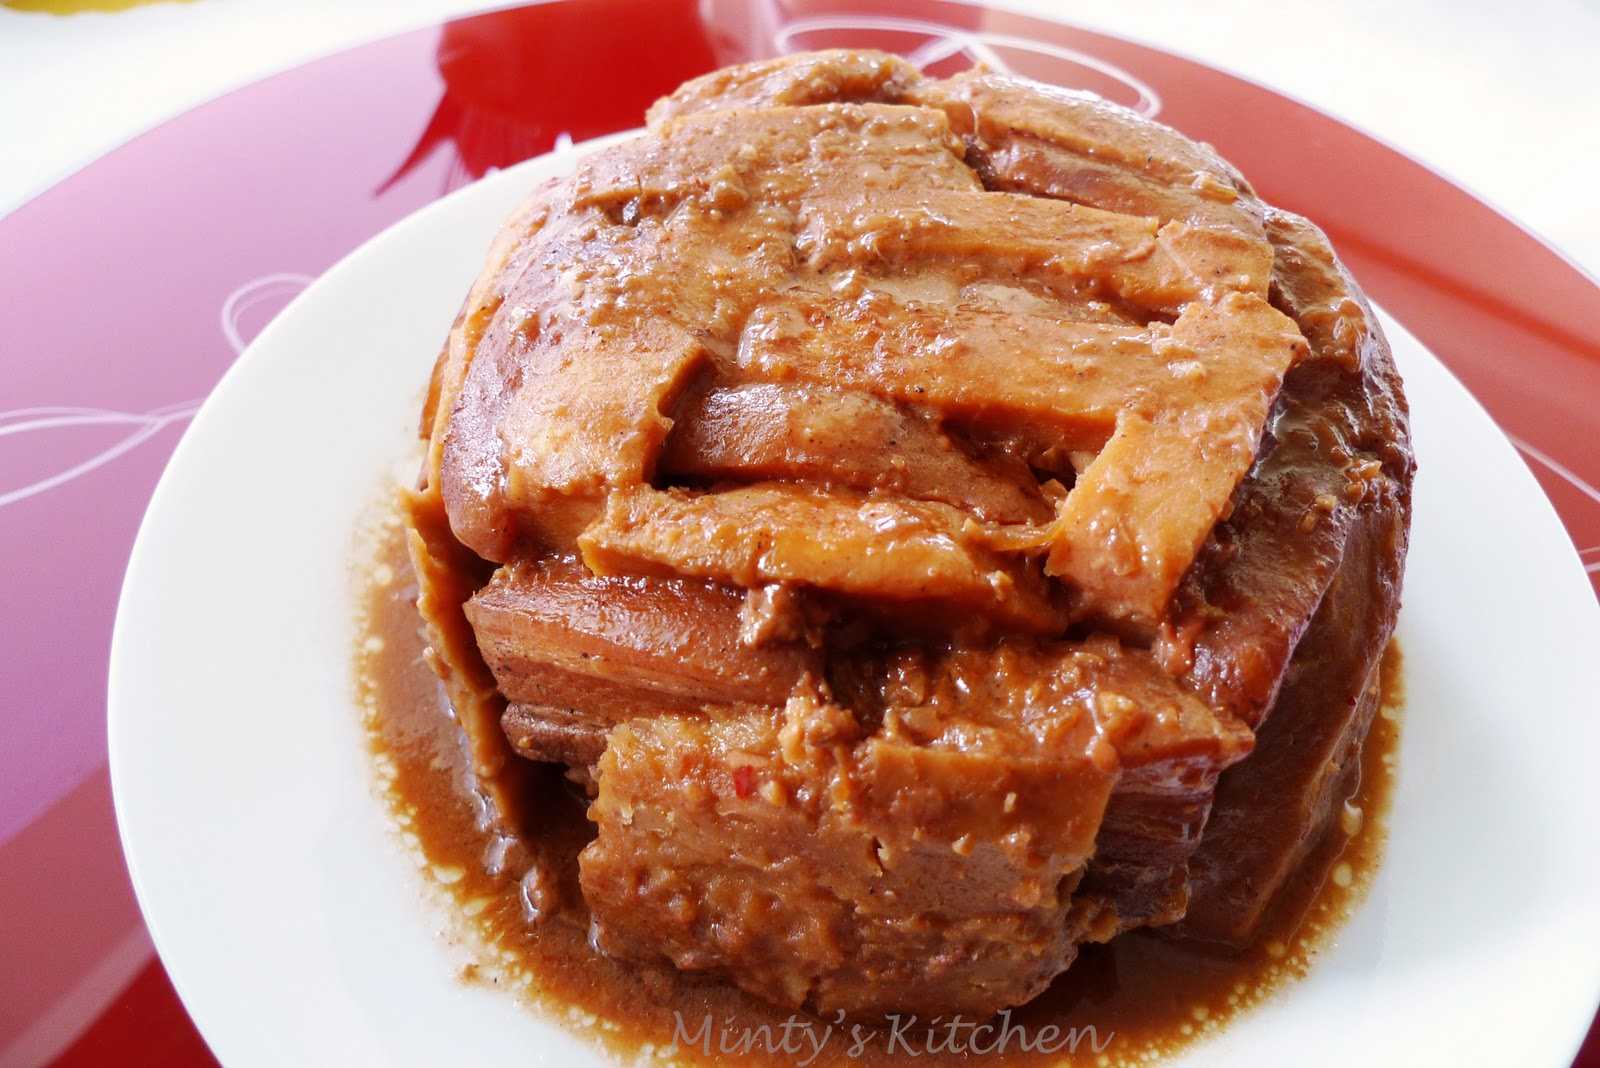 Minty's Kitchen: Hakka Steamed Pork Belly with Yam (芋头扣肉)